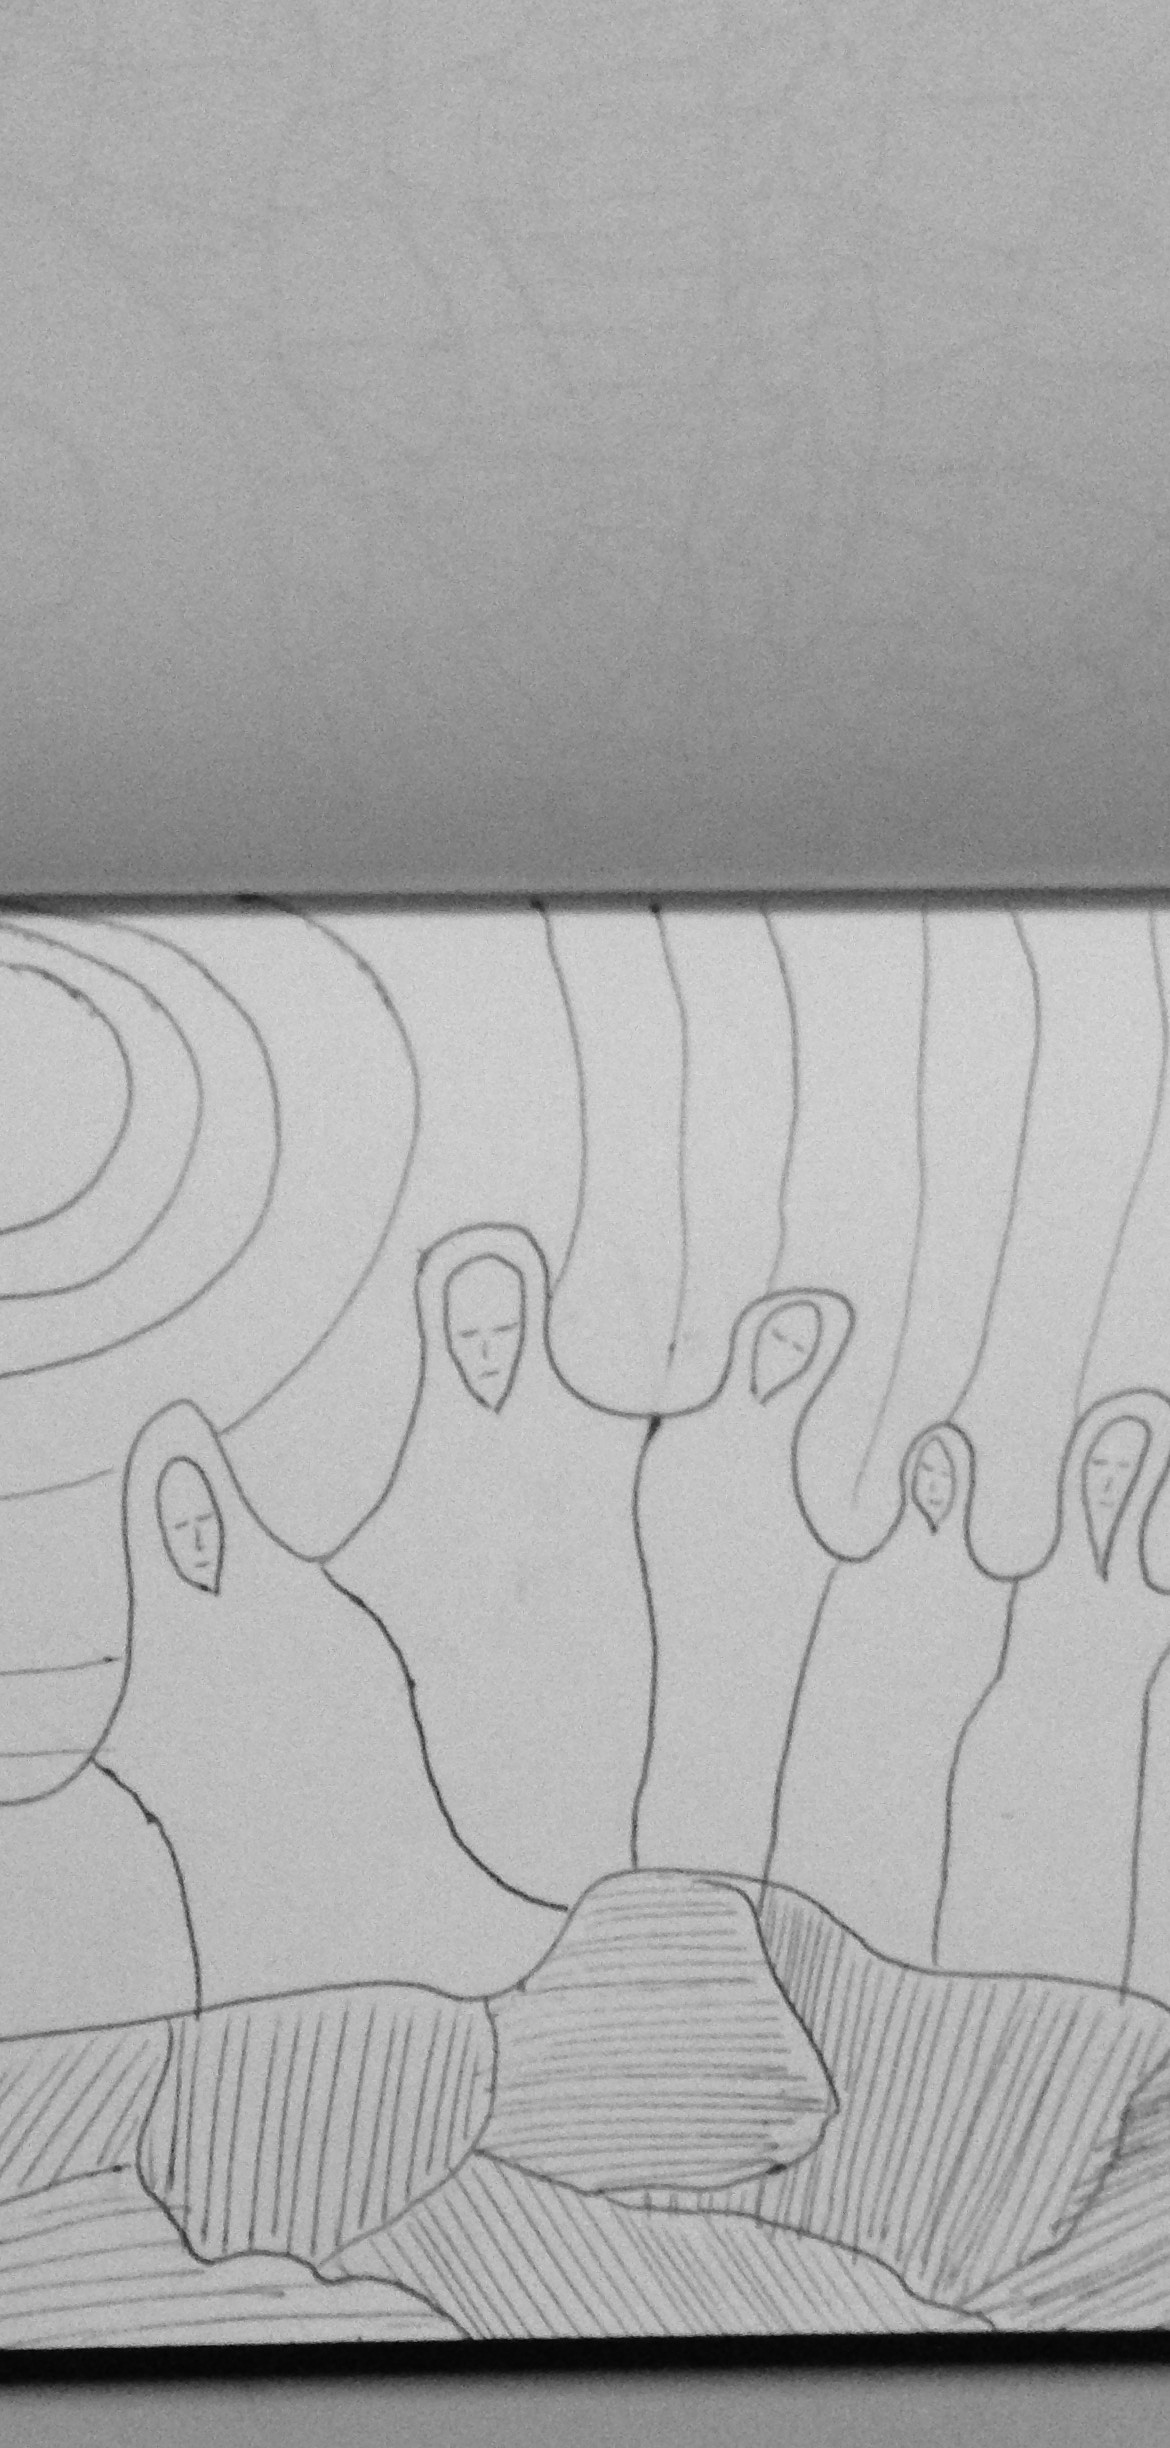 #DoodleADay challenge, day 22 at ArtTherapist.ca